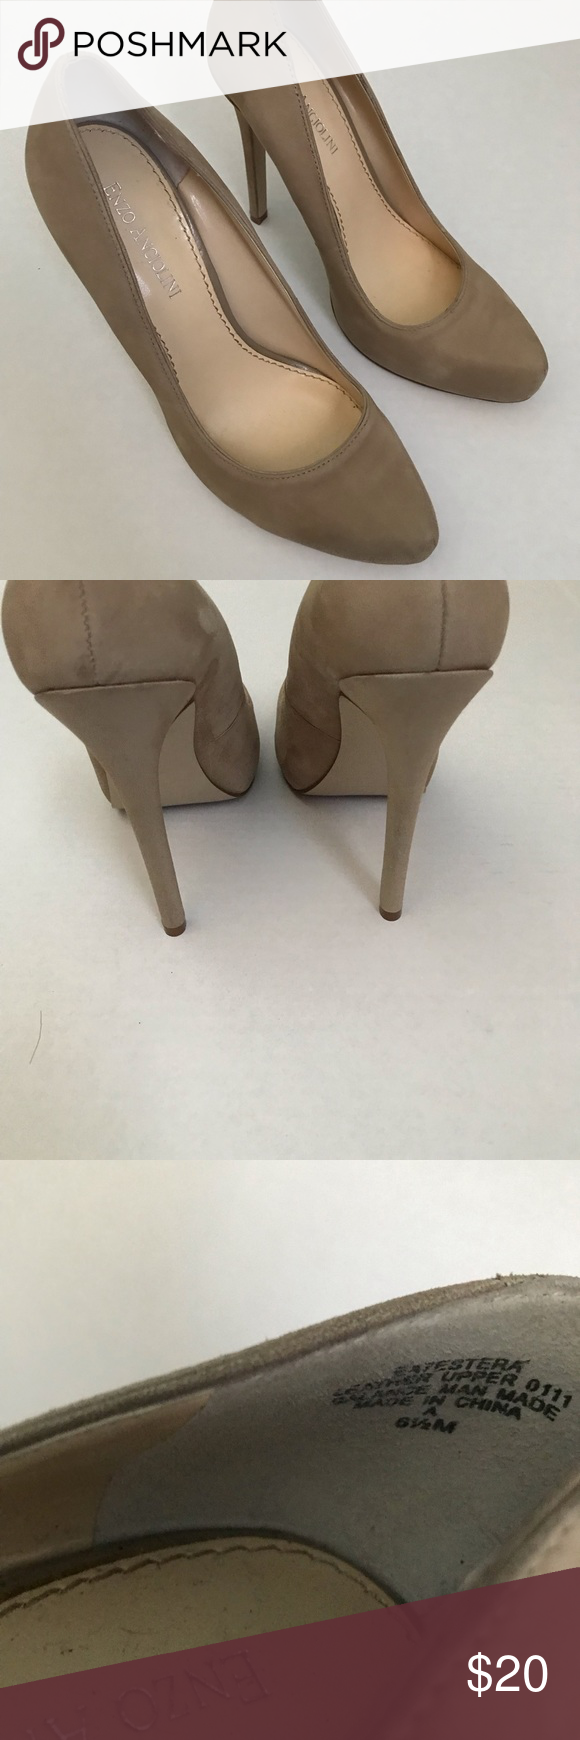 23966a8d782 Enzo Angiolini Suede Heels Enzo Angiolini Suede Heels Great condition  Slight discoloration on inside of right shoe (seen in 2nd to last photo)  Size 8 1/2 M ...